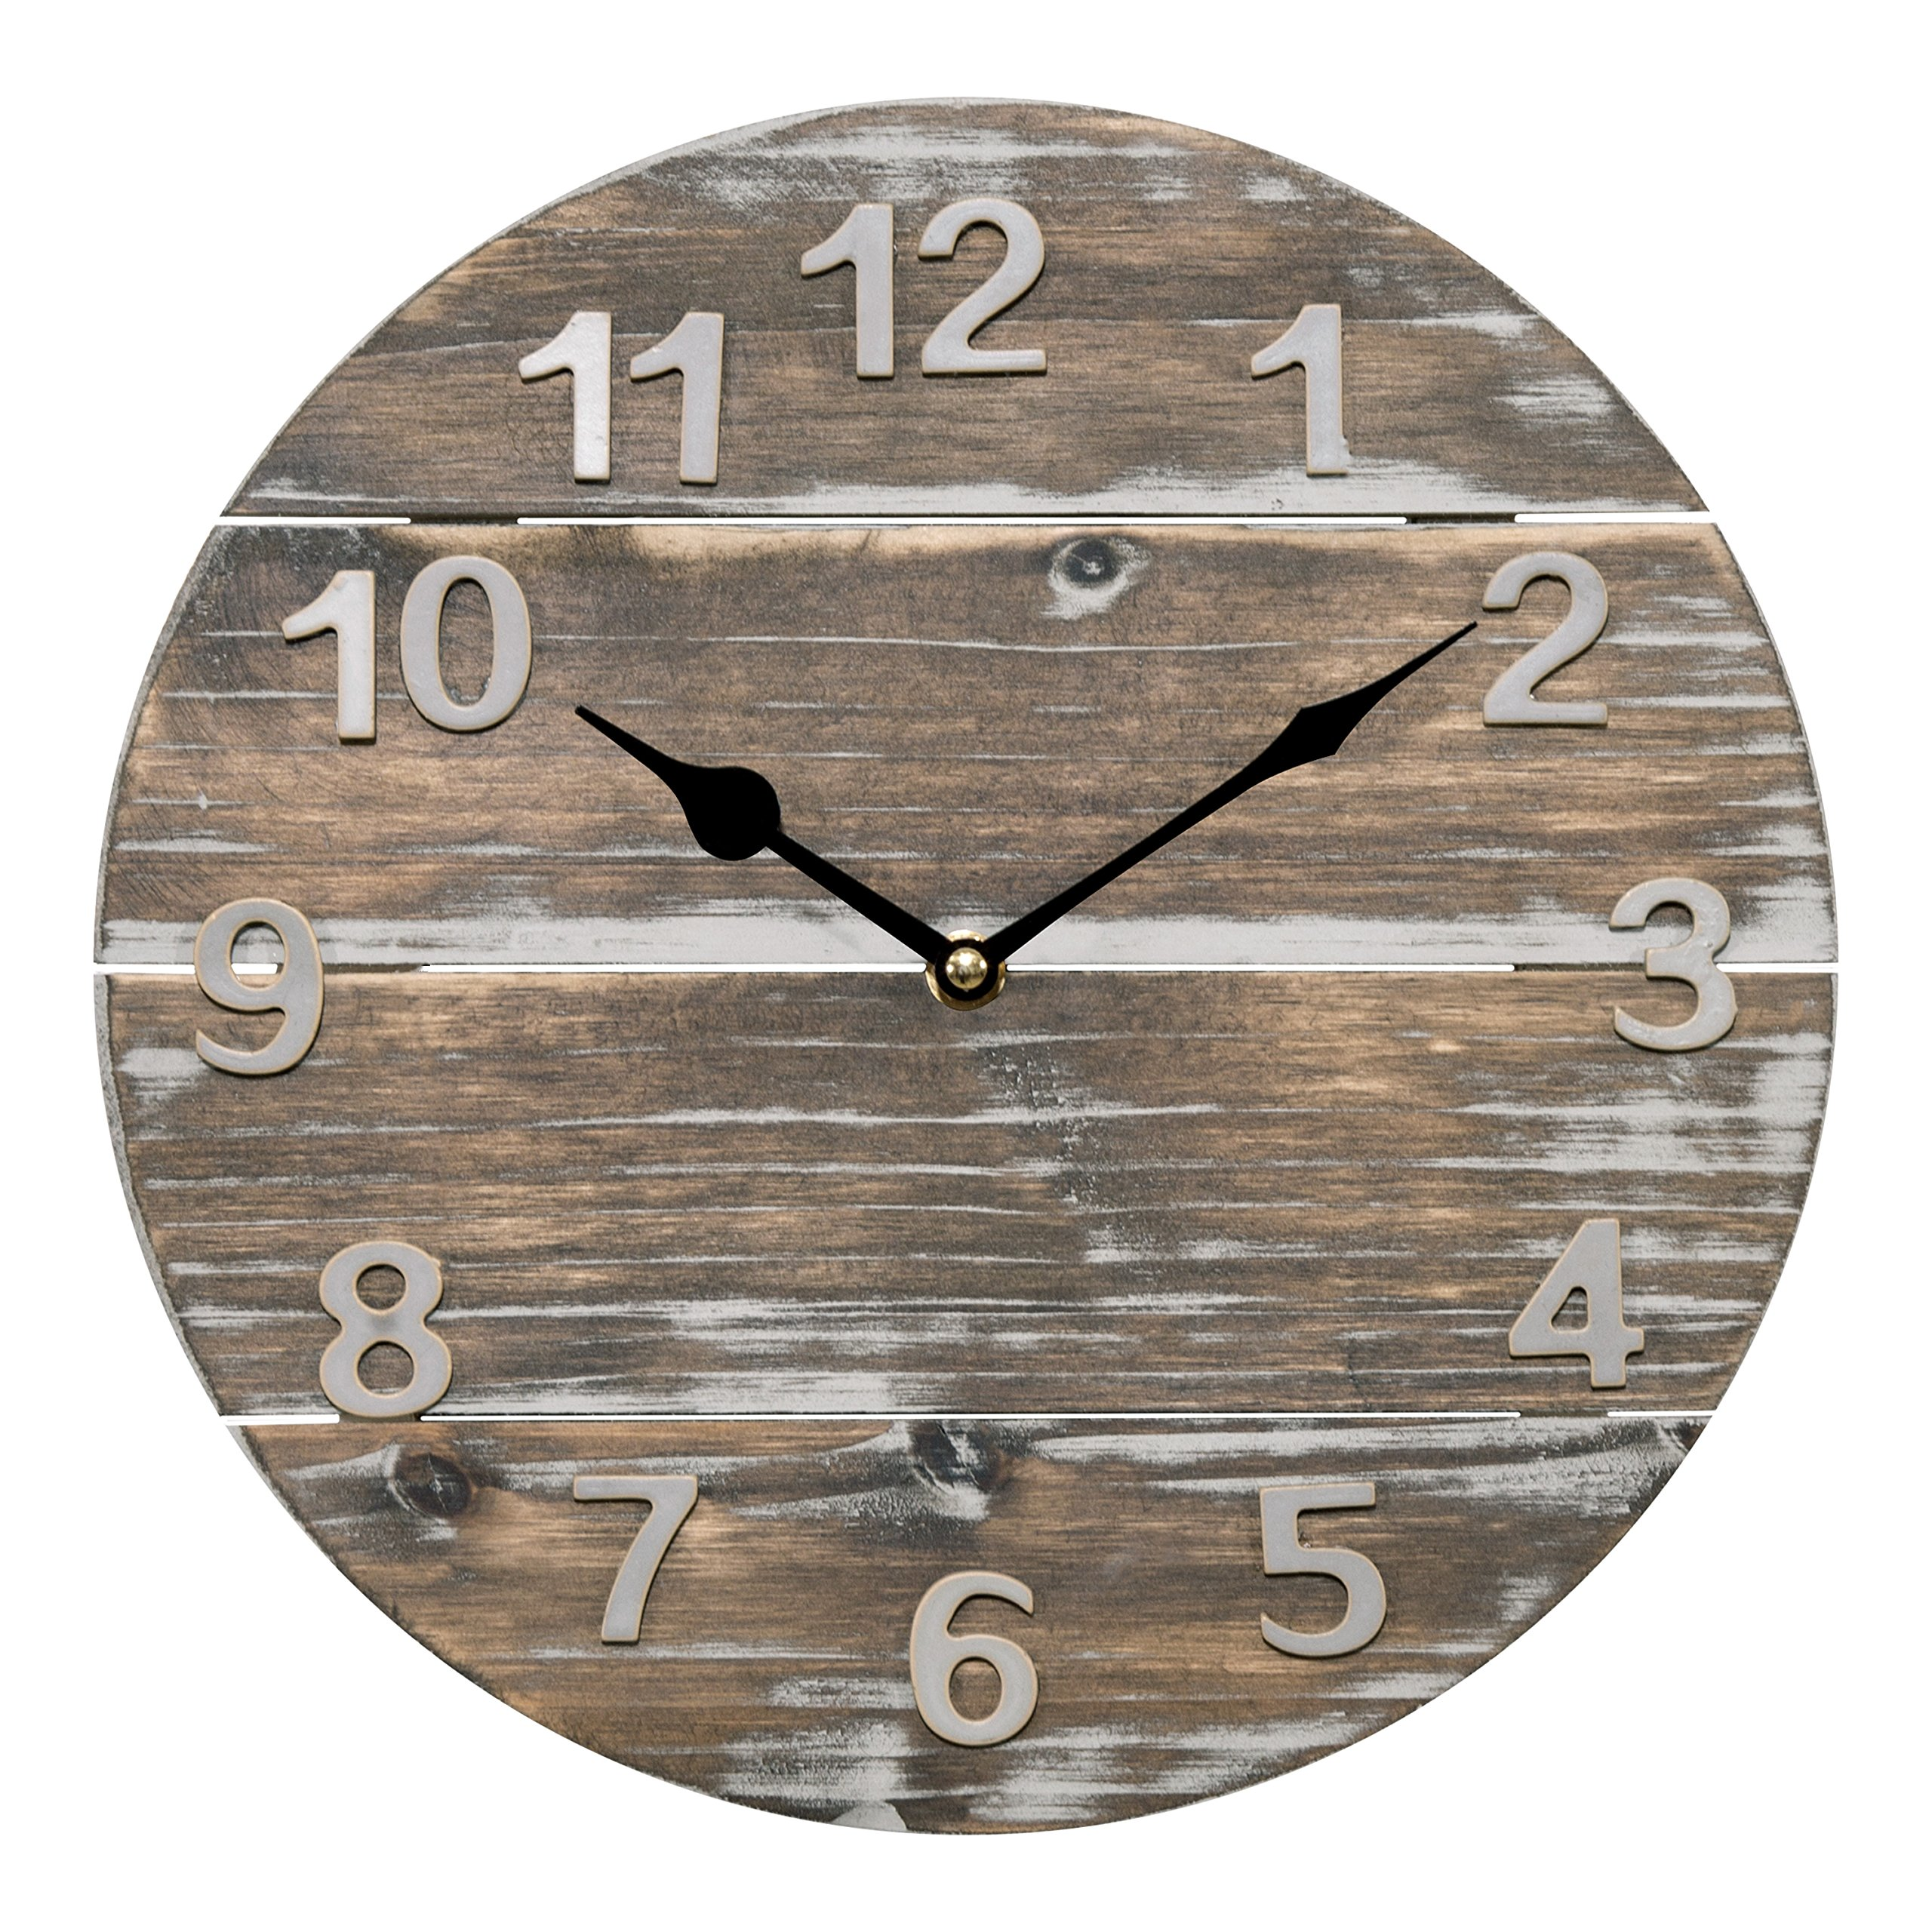 Lacrosse 404-3430W 12'' Quartz Wood Panel Wall Clock, Brown